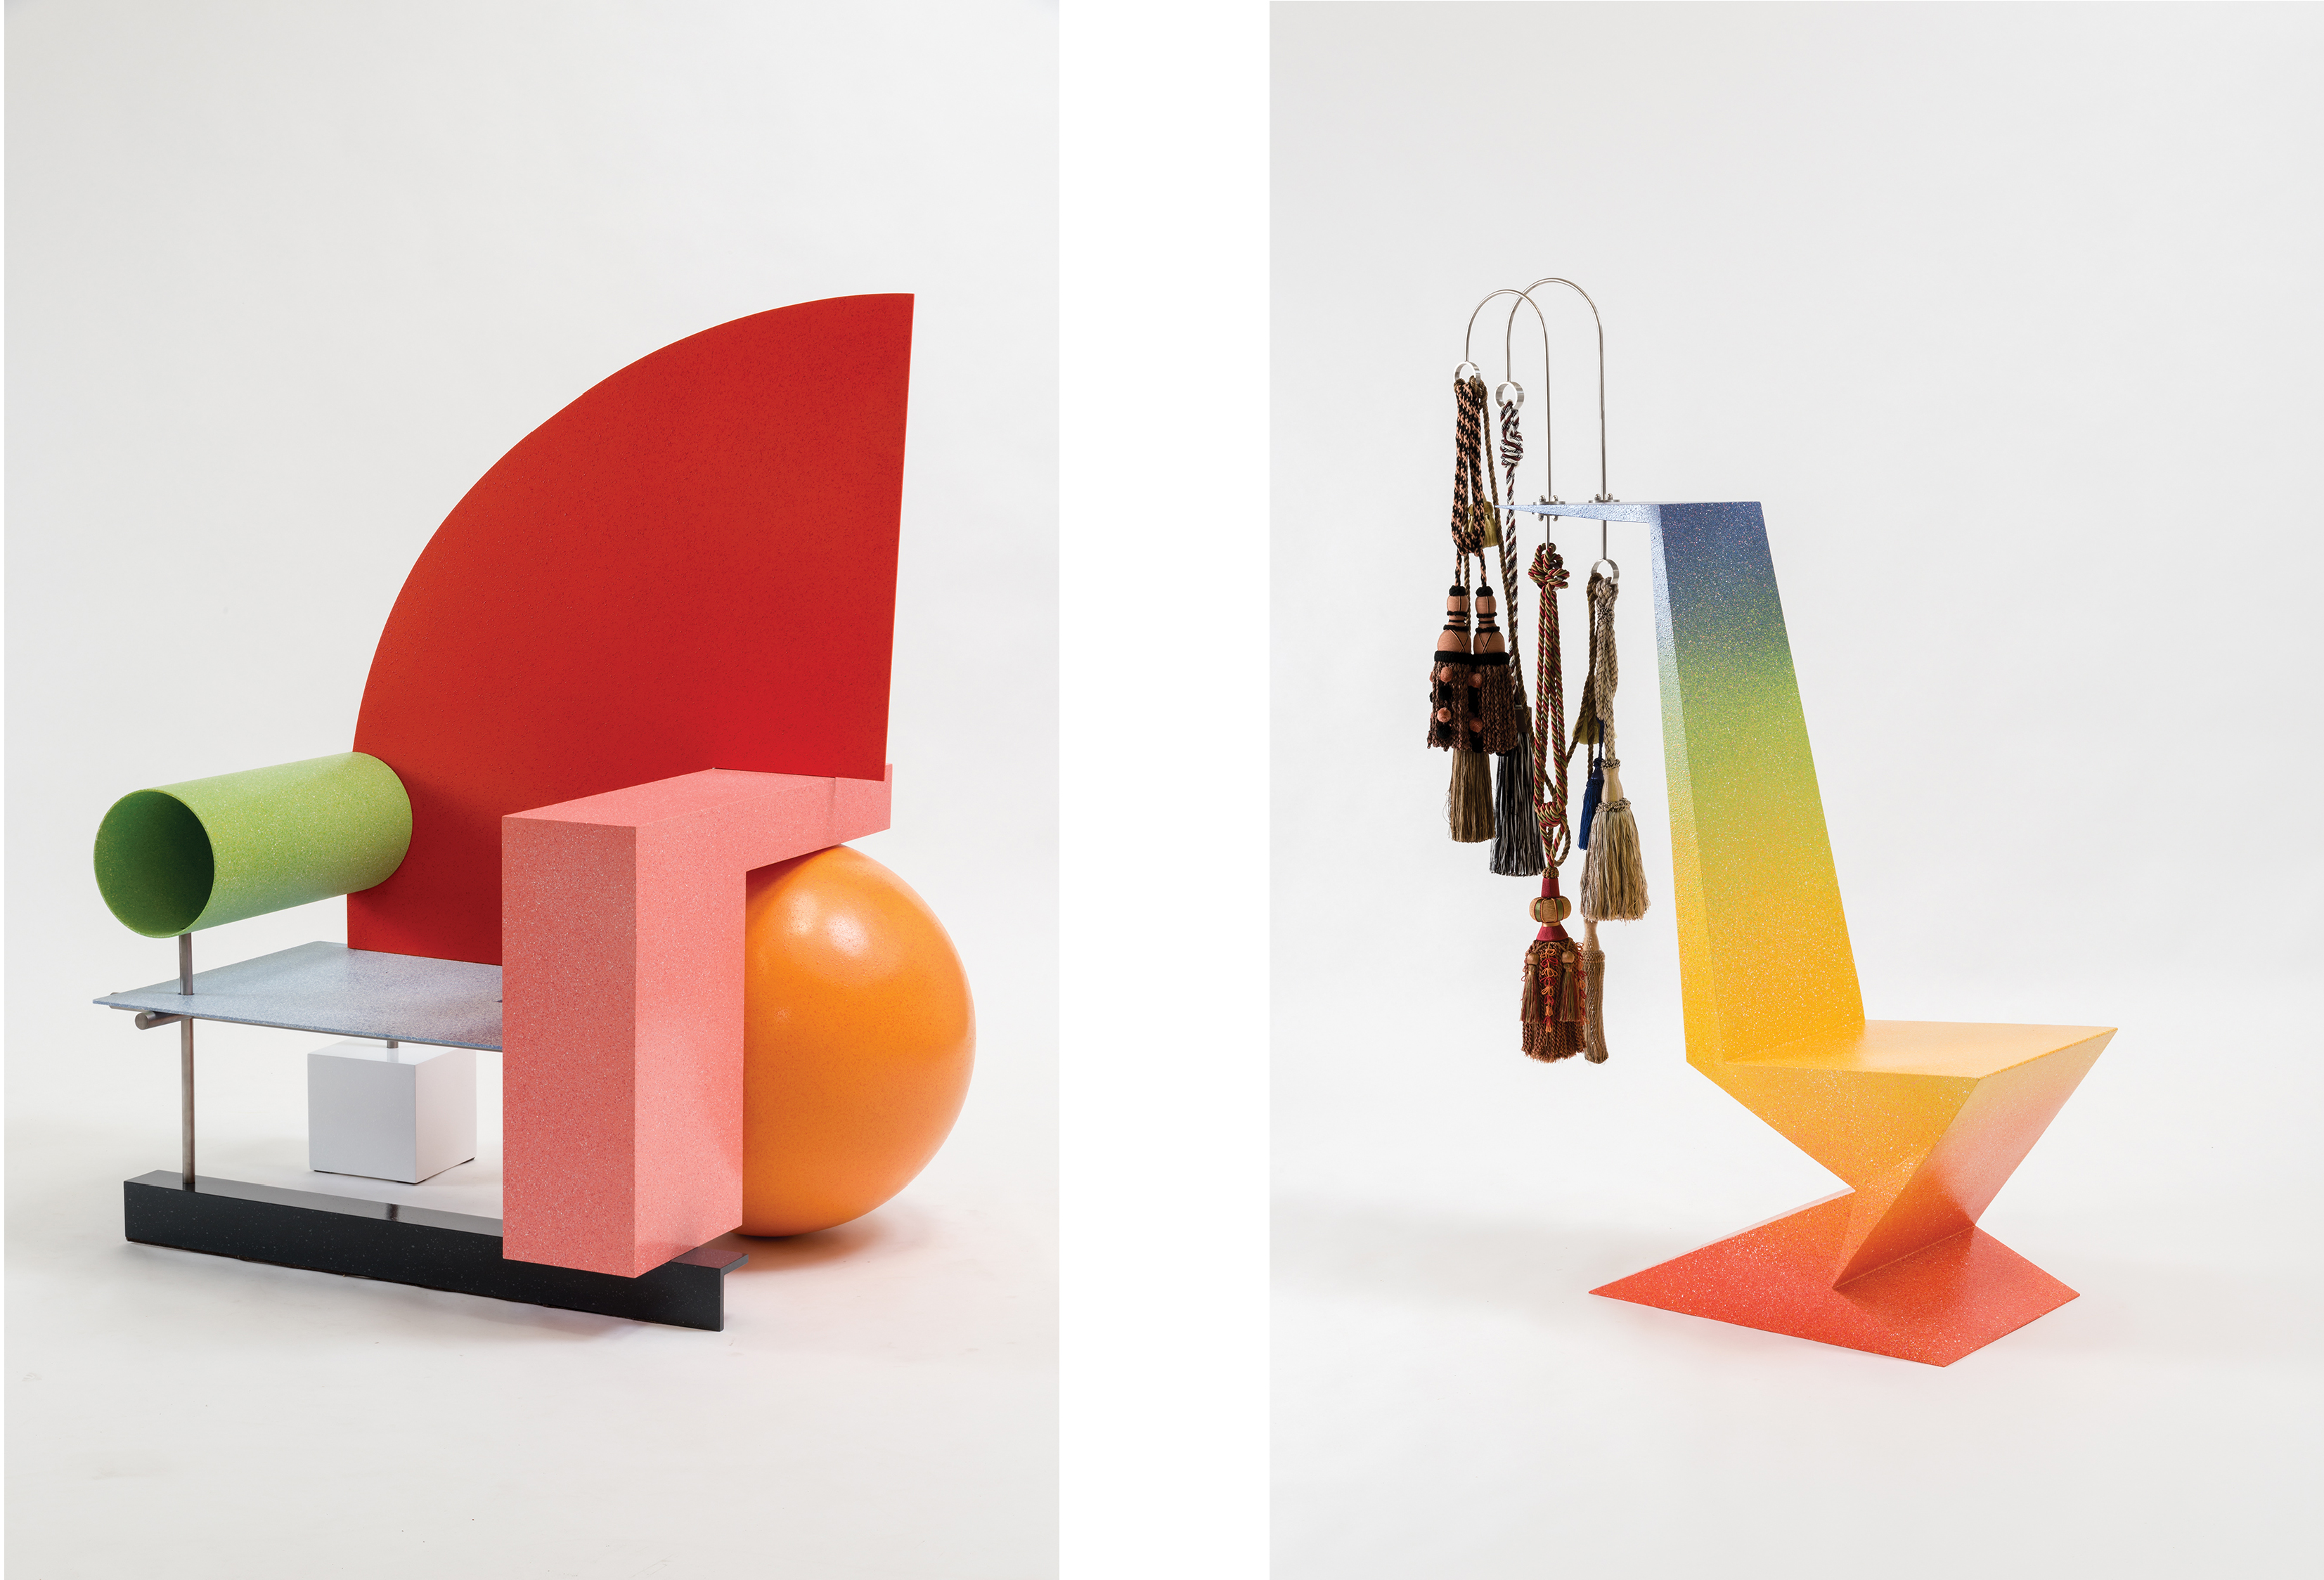 Peter Shire, Belle Aire Chair, 2010, steel and enamel, 56 × 40 × 45 1/2 in.; Peter Shire, Right Weld Chair, 2007, steel, enamel, and tassels, 63 × 16 × 43 in., images courtesy of the artist, photos by Joshua White